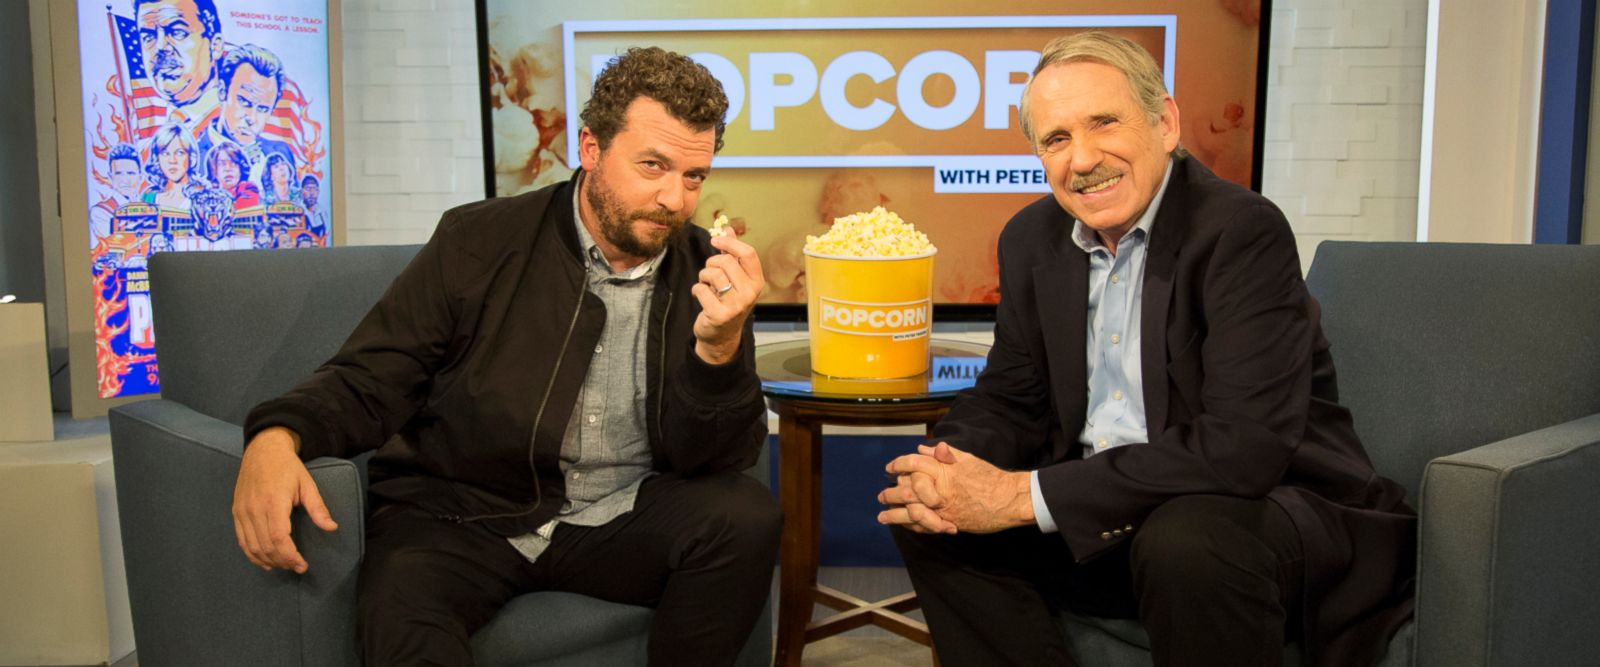 "VIDEO: McBride appears on ""Popcorn With Peter Travers"" and shares how real-life events may have inspired the show's quirky storylines."